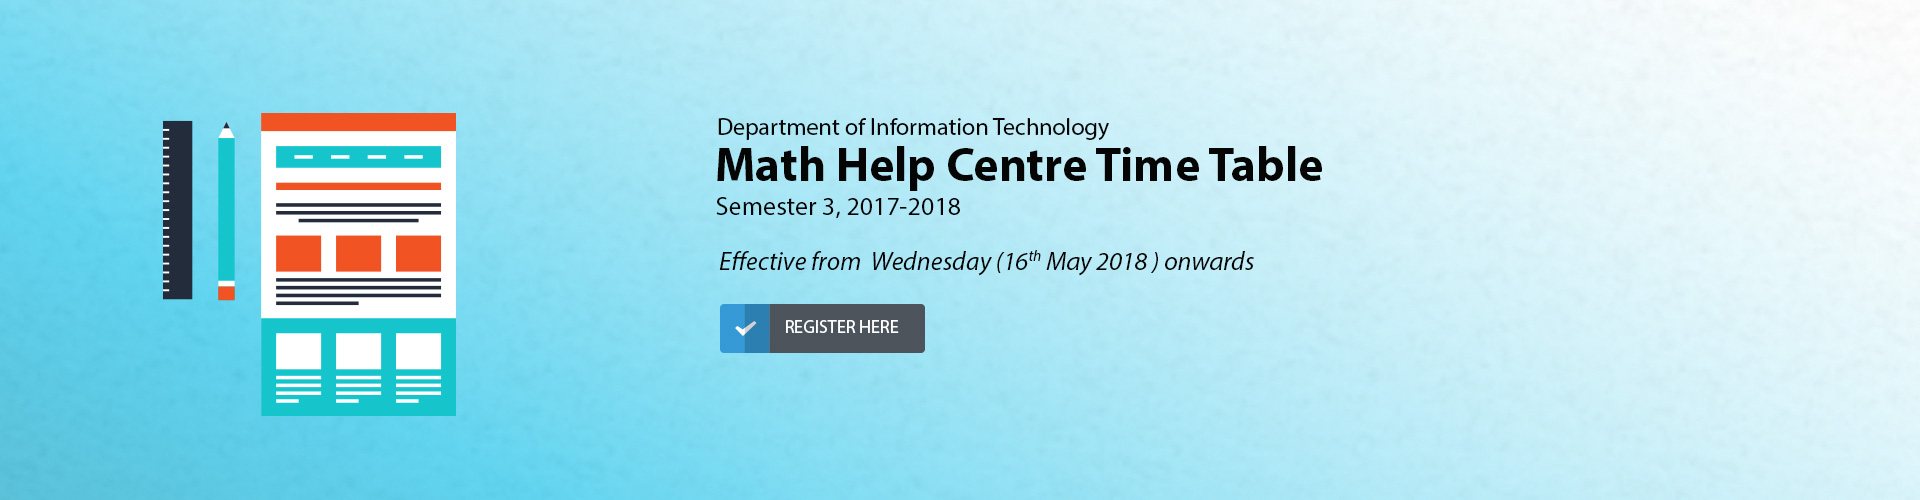 IT Department - Math Help Centre Timetable - Sem 3, Ay 2017-2018